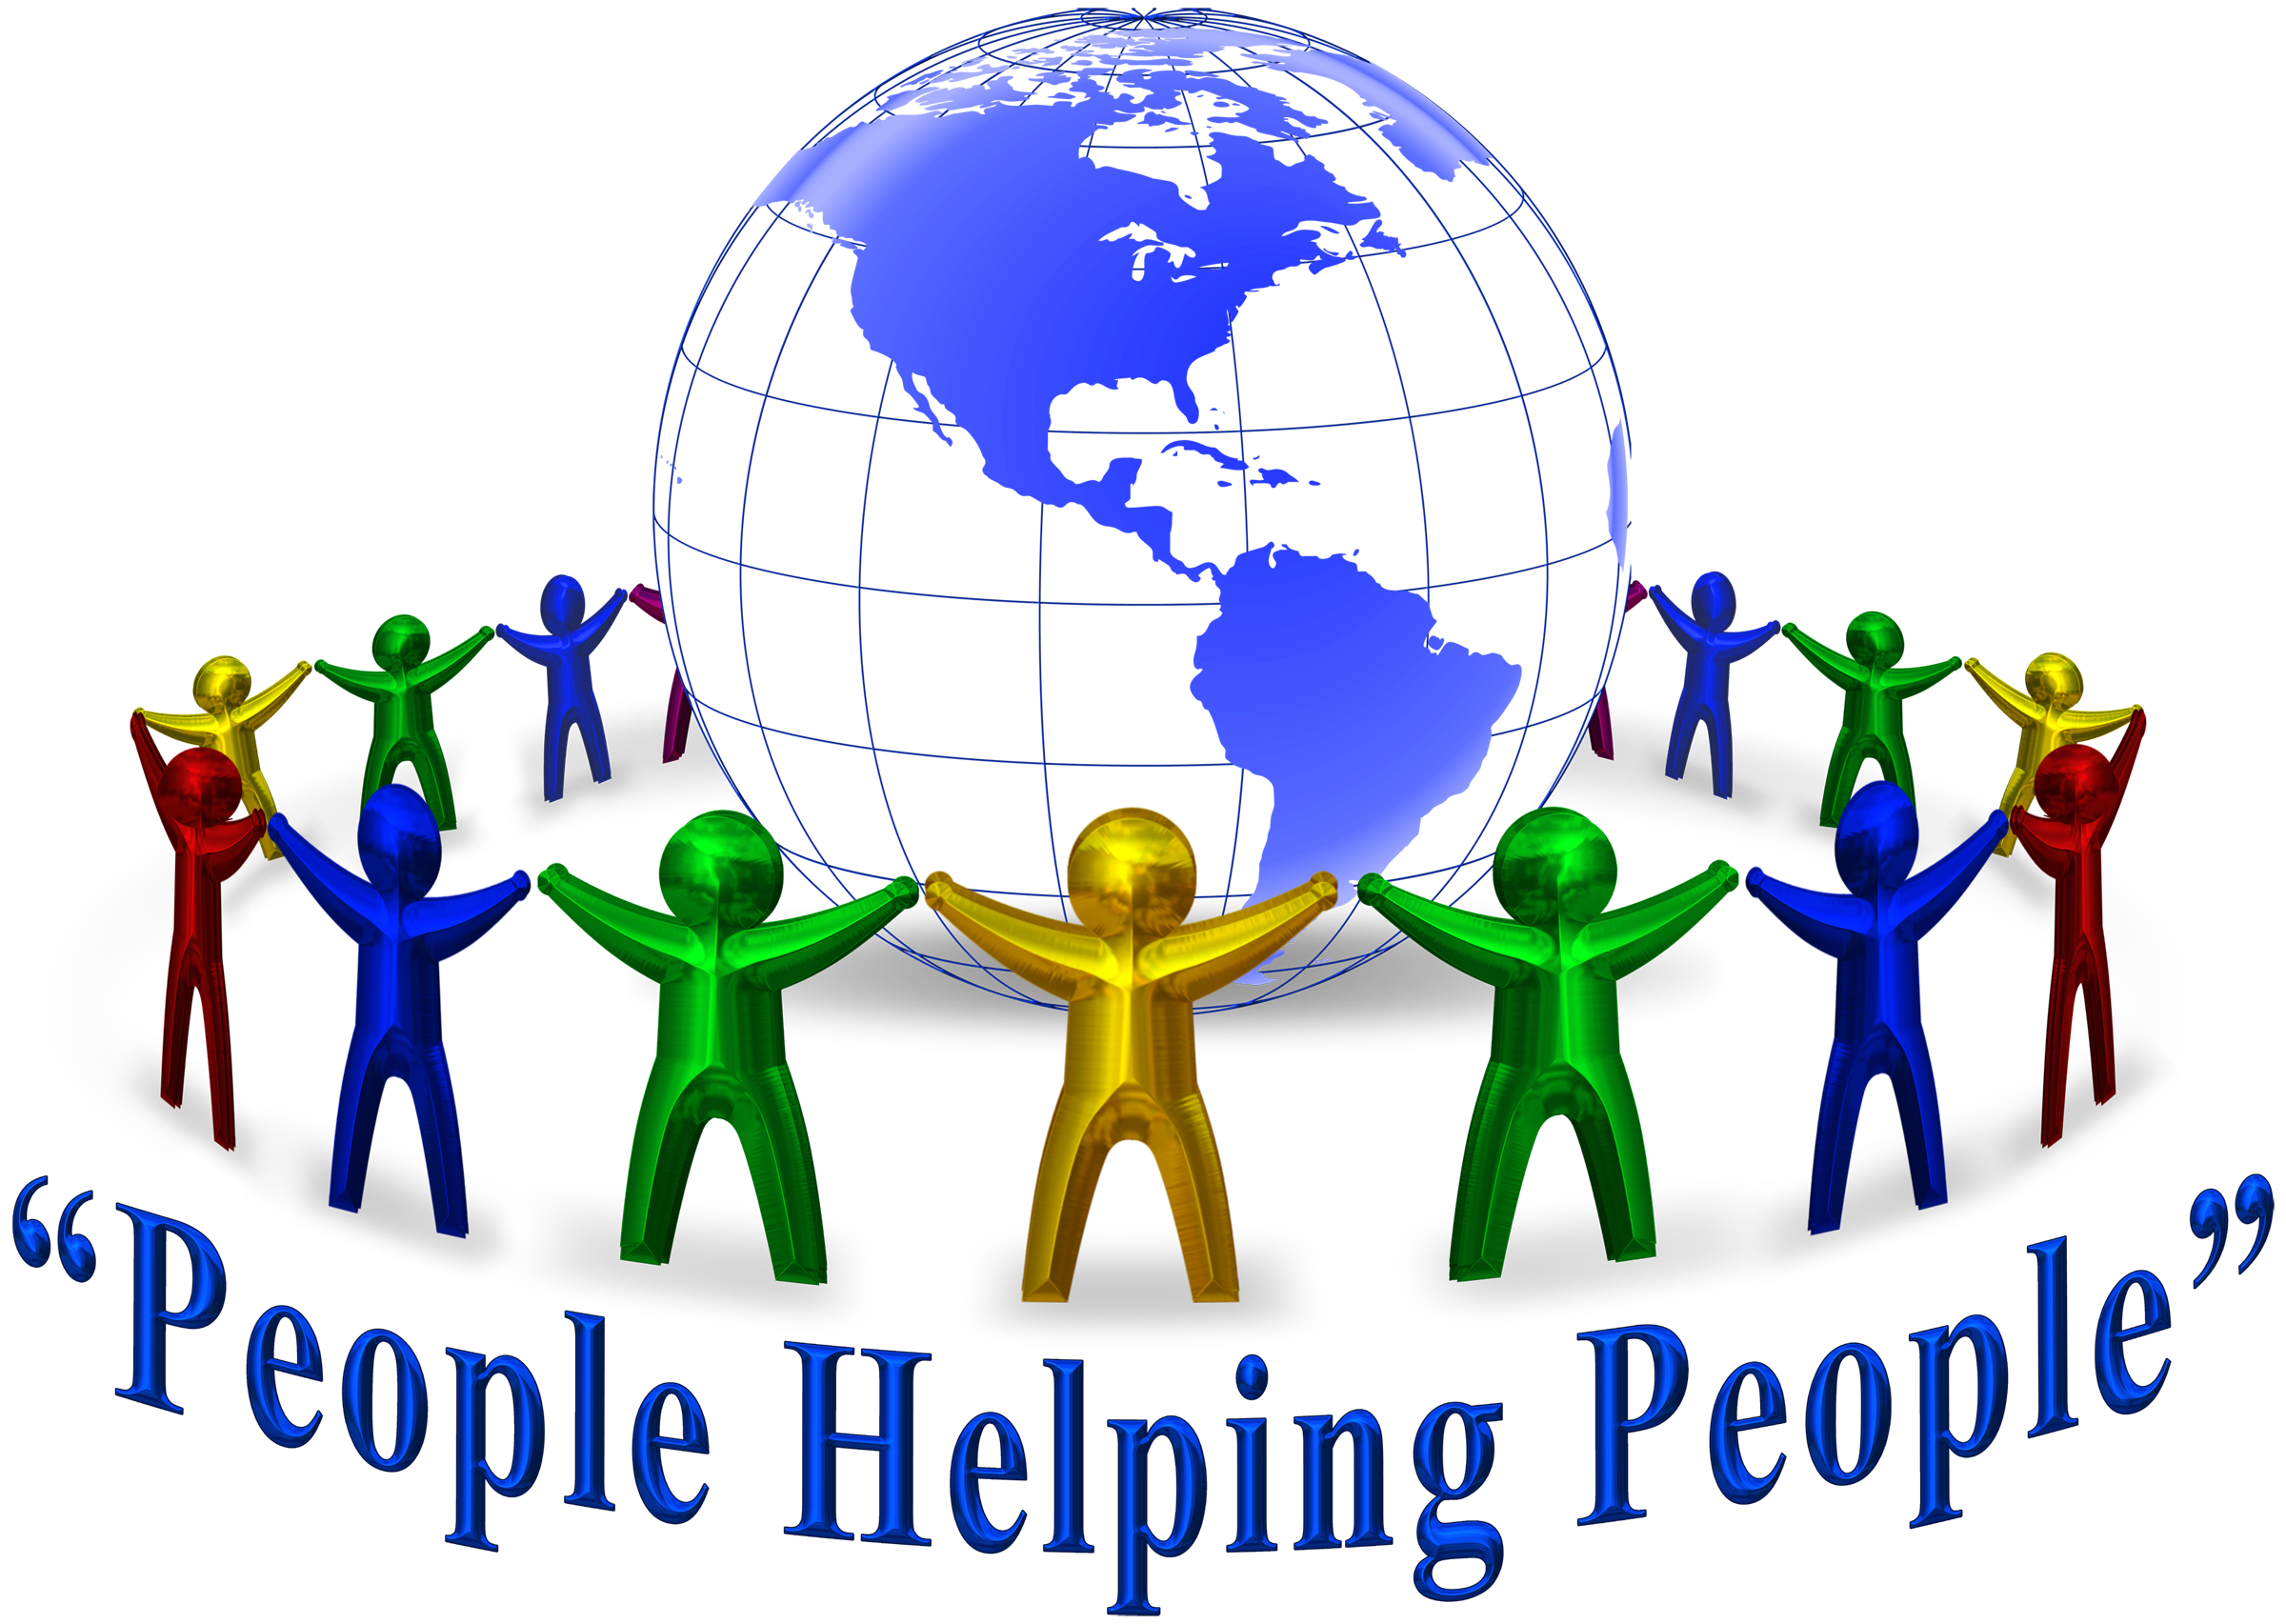 People Helping Others Clipart - Clipart Kid